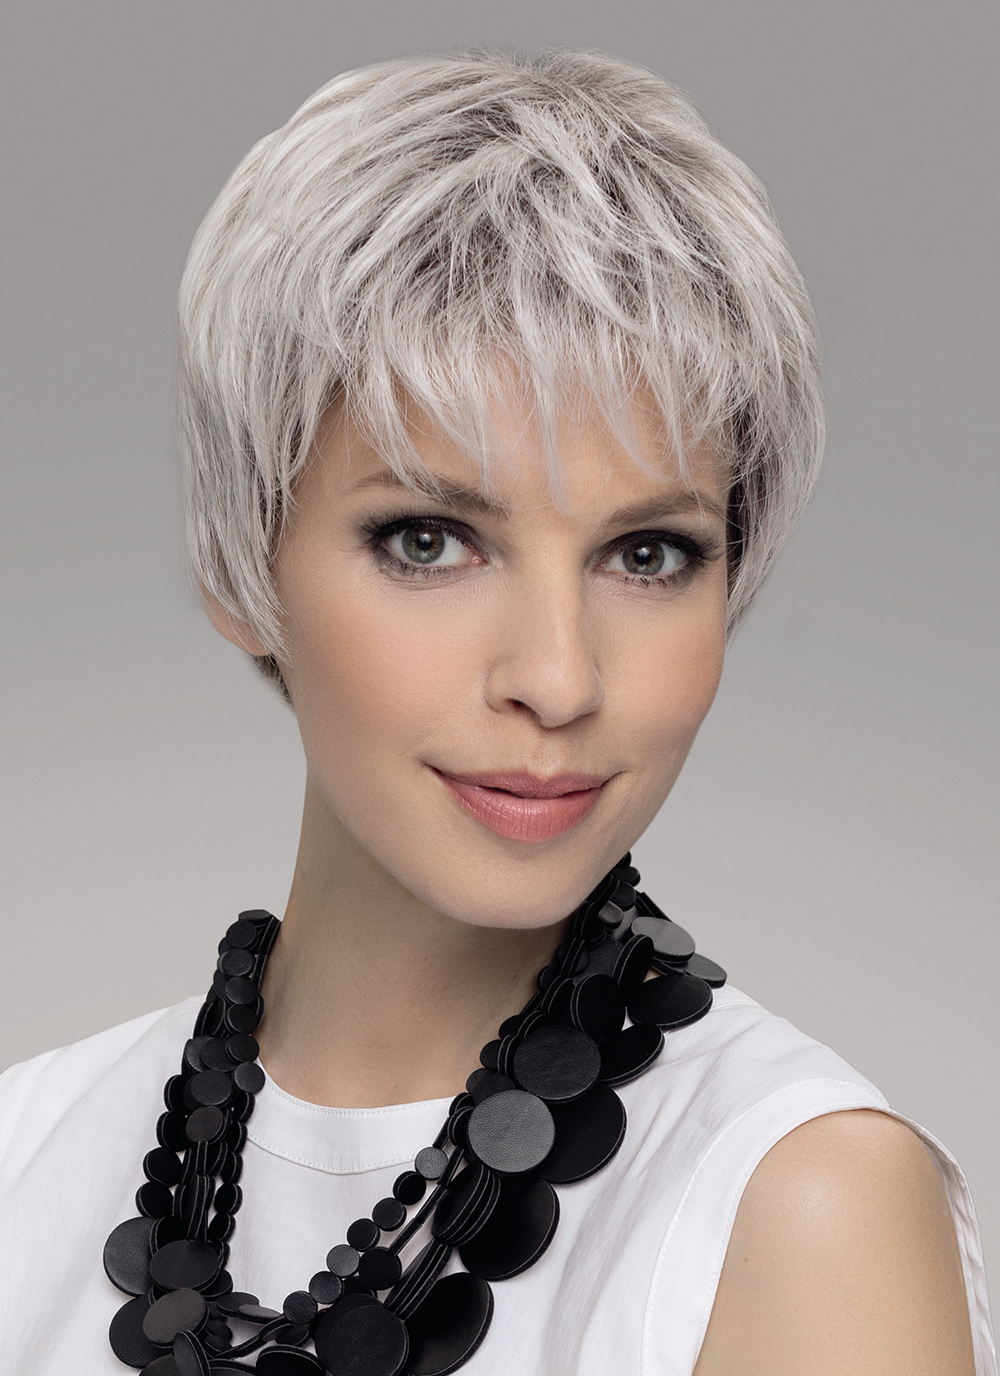 ENCORE by ELLEN WILLE in SILVER-BLONDE-ROOTED